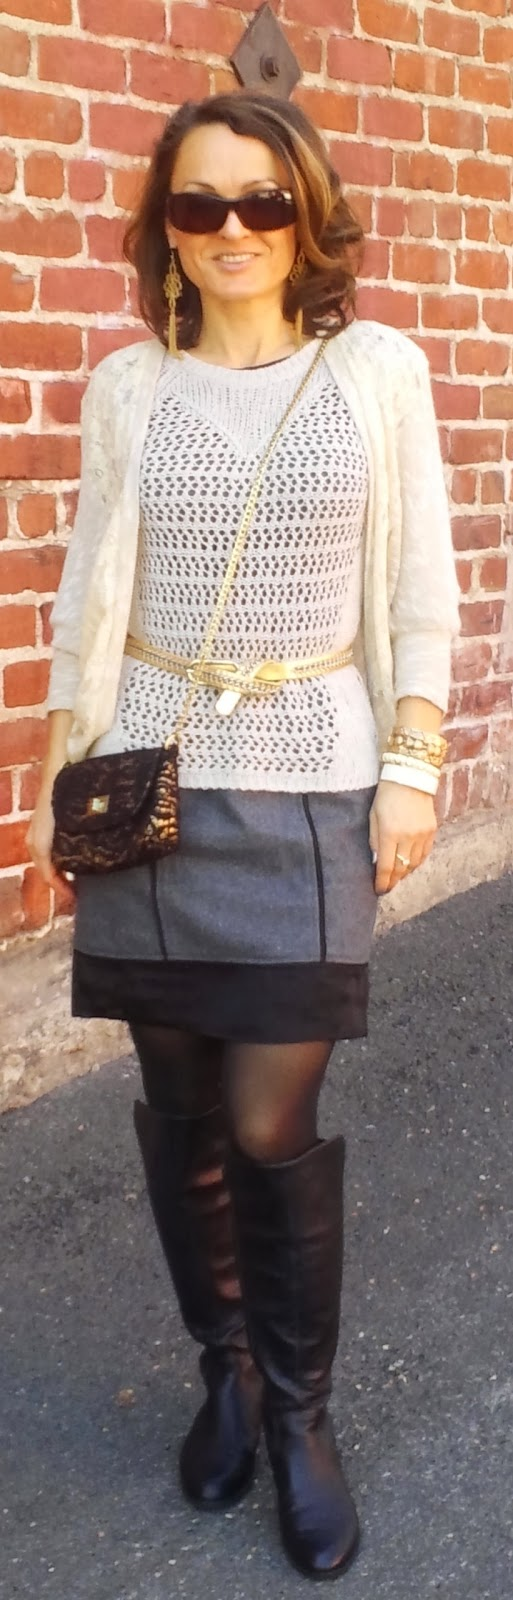 blog.oanasinga.com-outfit-ideas-personal-style-photos-wearing-lace-black-grey-gold-layering-gold-accessories-2